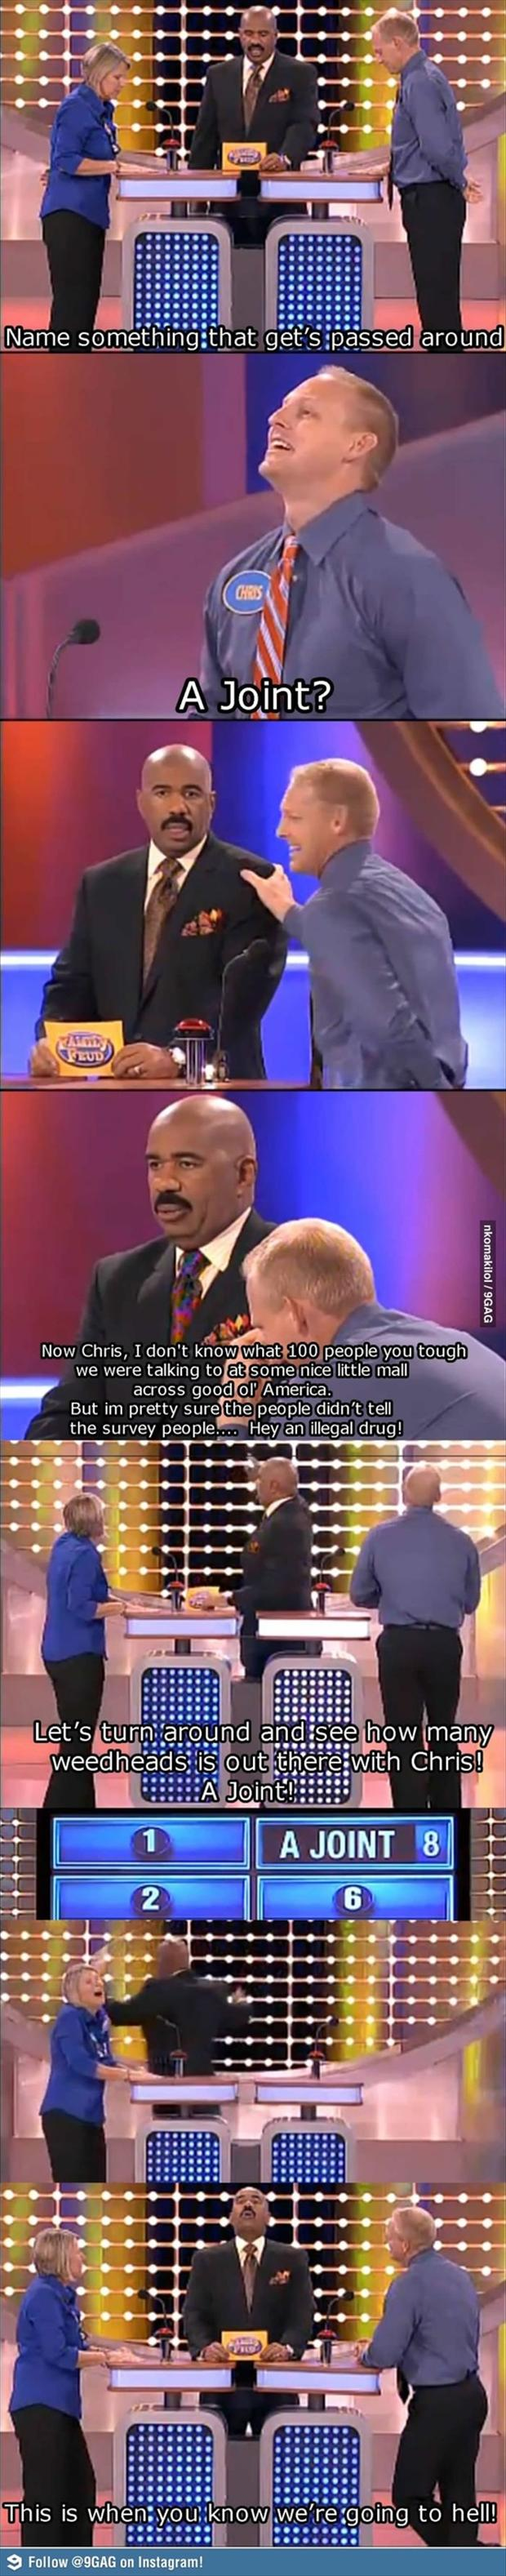 funny family fued answers